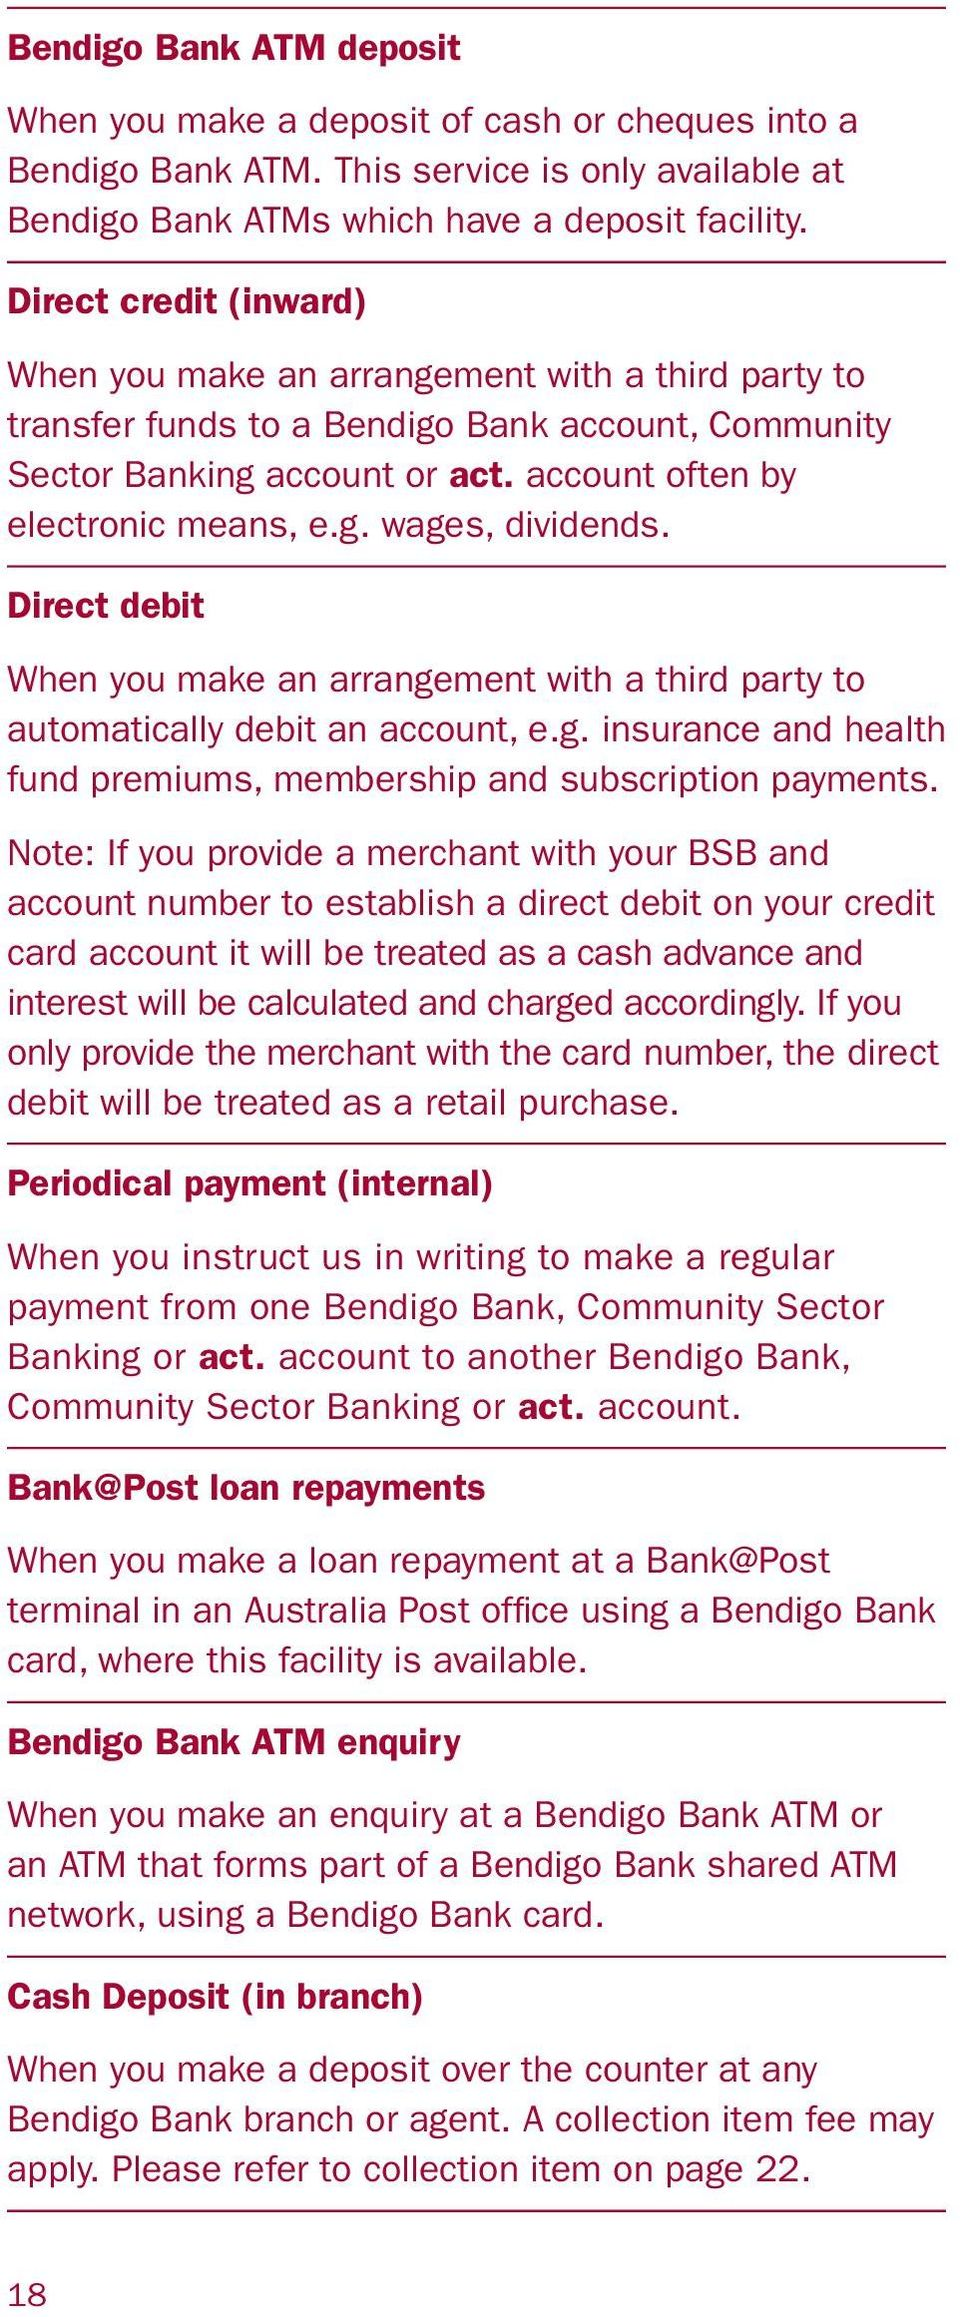 Direct debit When you make an arrangement with a third party to automatically debit an account, e.g. insurance and health fund premiums, membership and subscription payments.